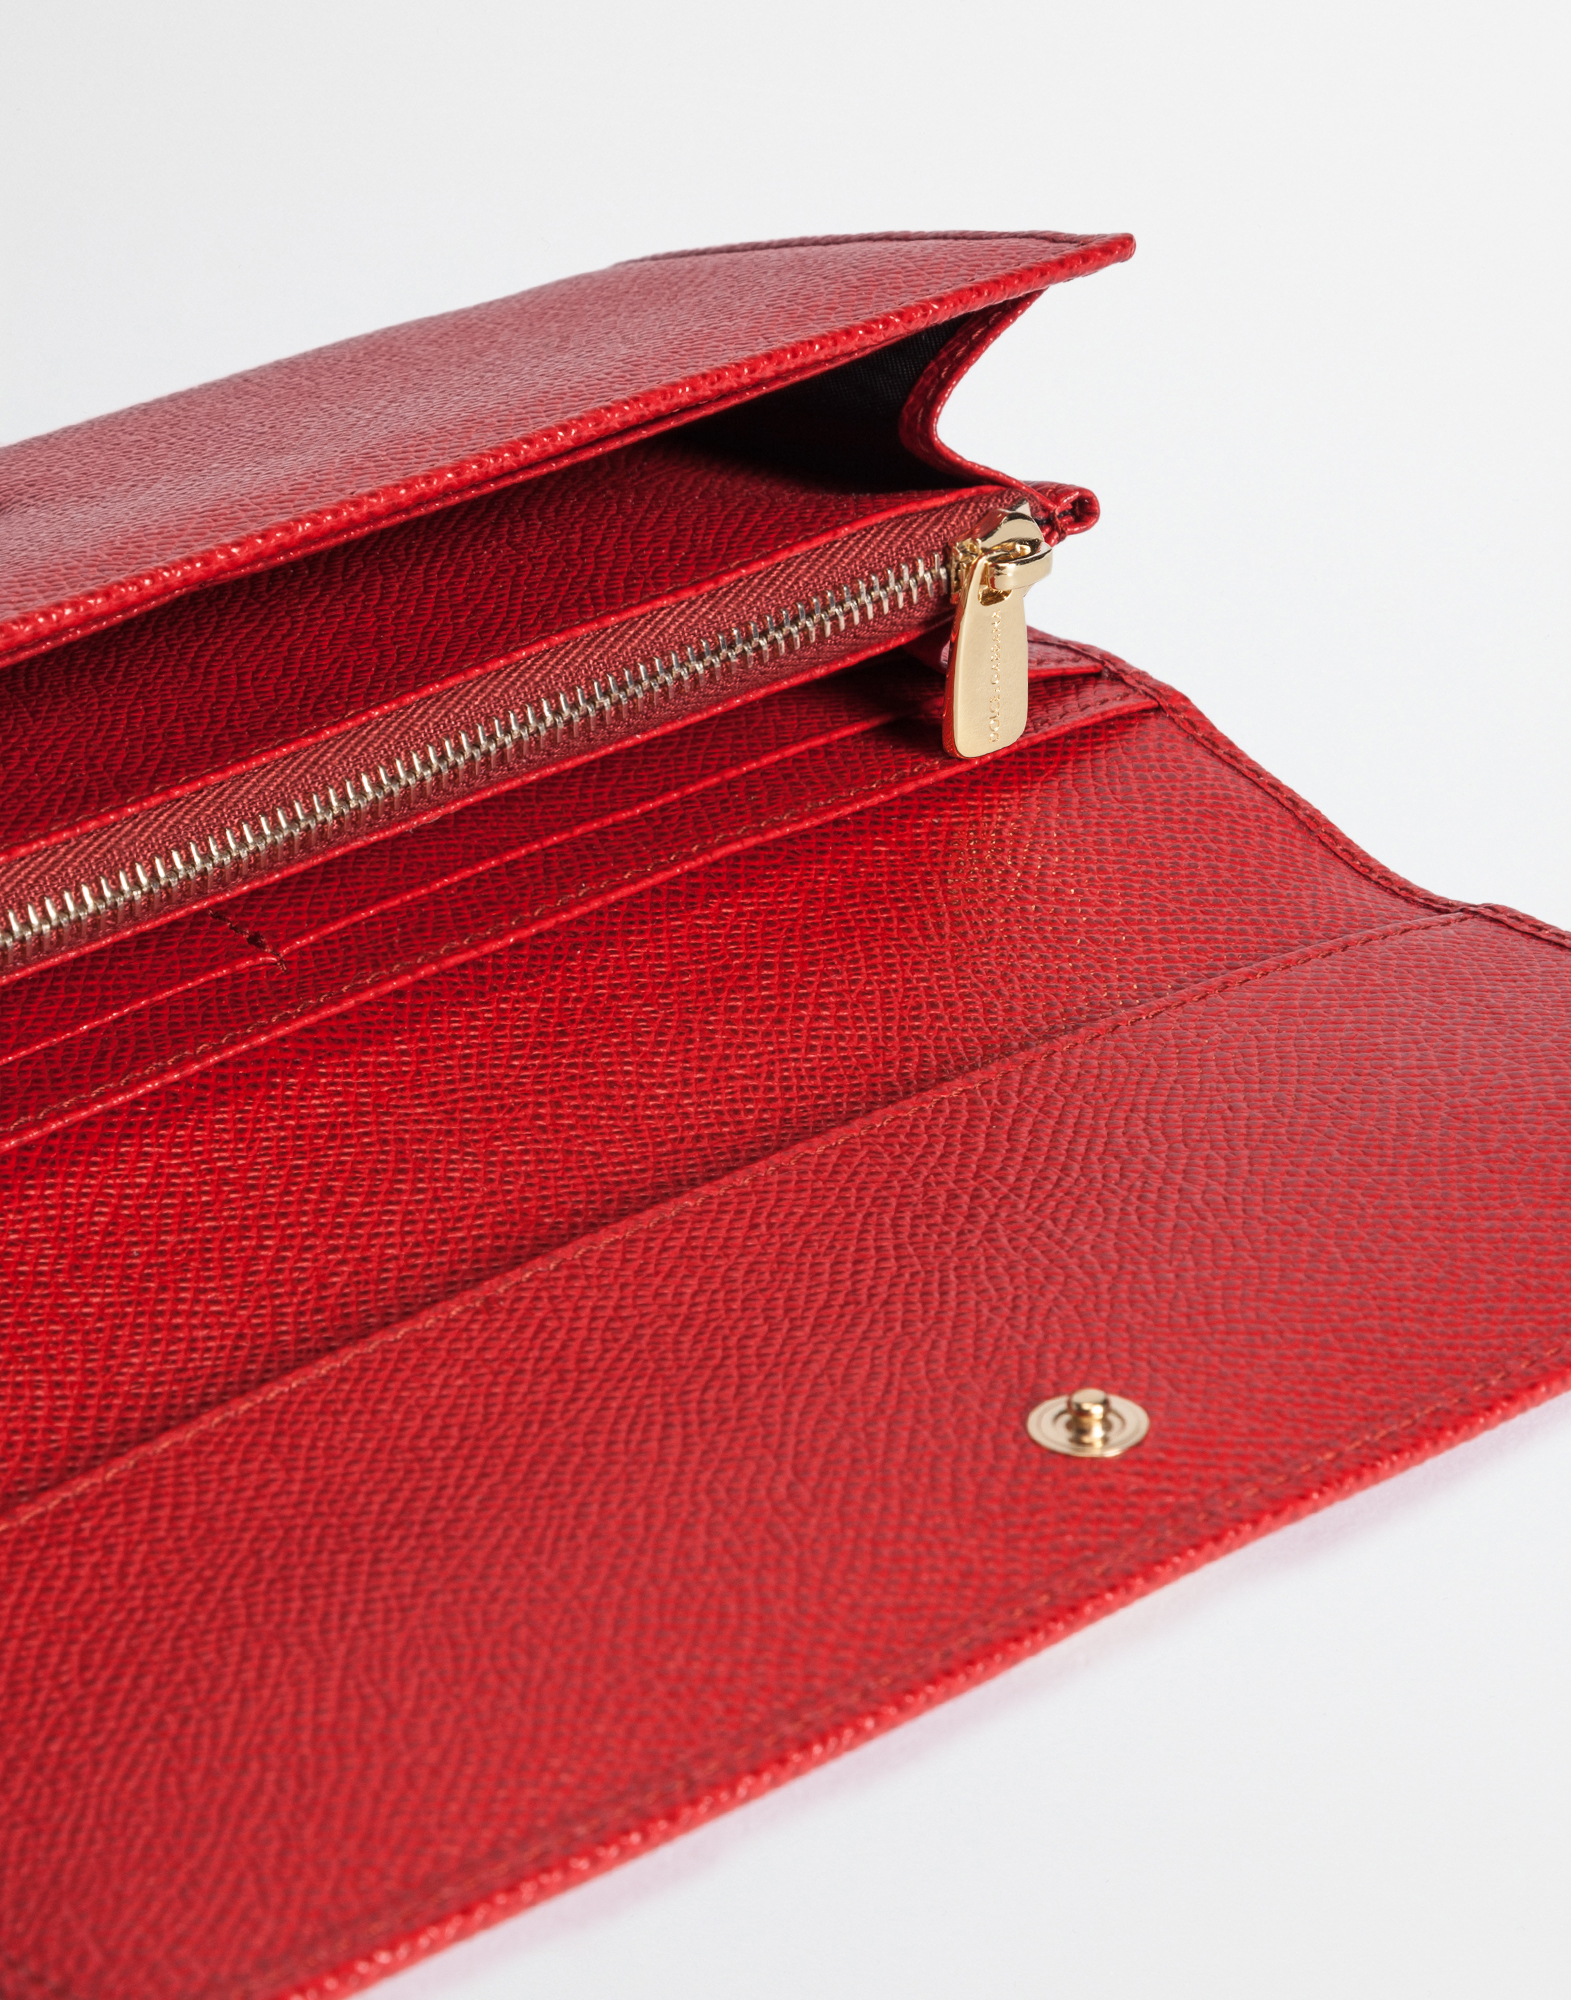 755c661f497 CONTINENTAL WALLET IN DAUPHINE LEATHER